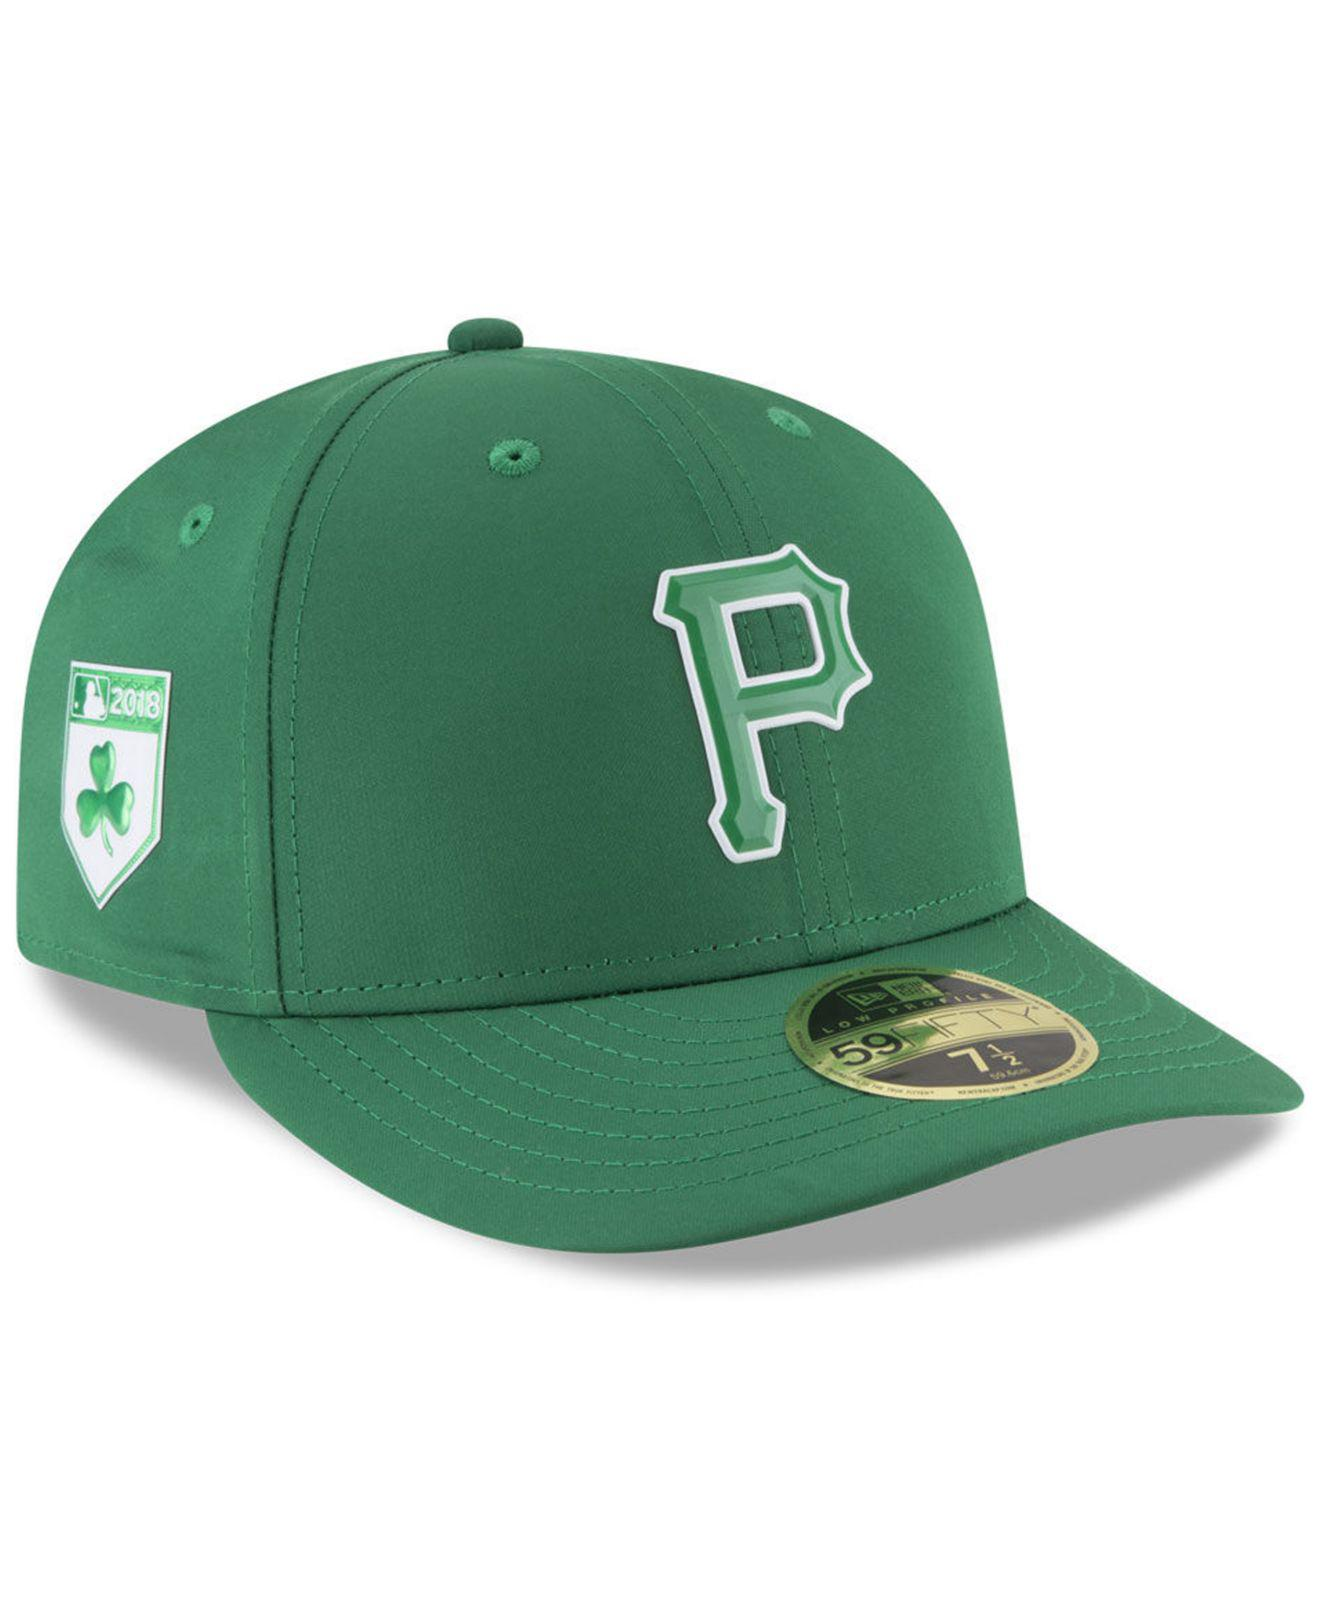 02476d46c0c Lyst - KTZ Pittsburgh Pirates St. Patty s Day Pro Light Low Crown ...